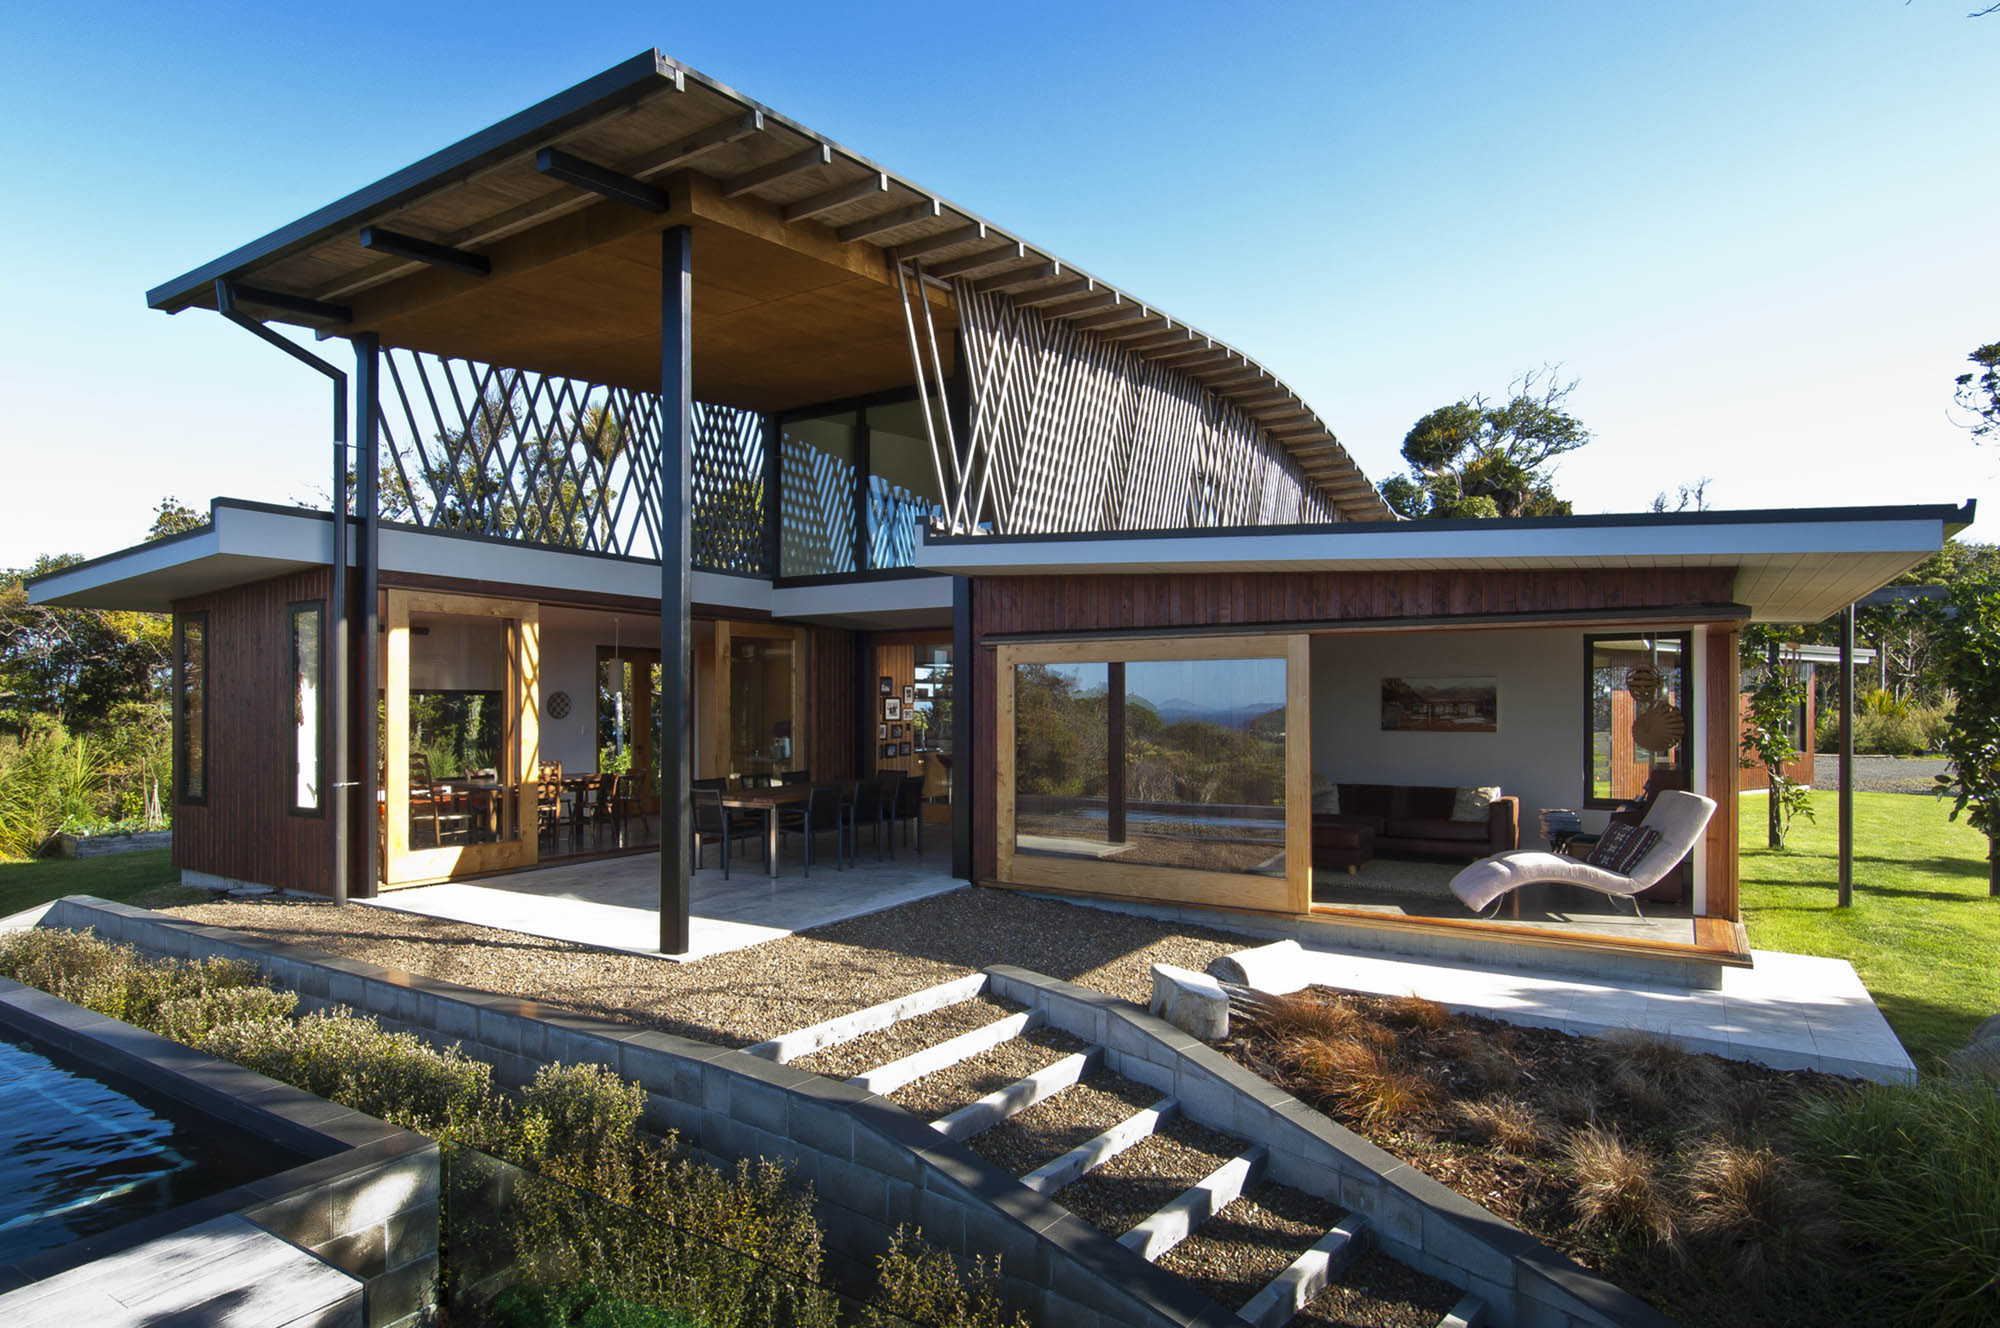 Gallery of ngunguru house tennent brown architects 1 for Hilltop home designs